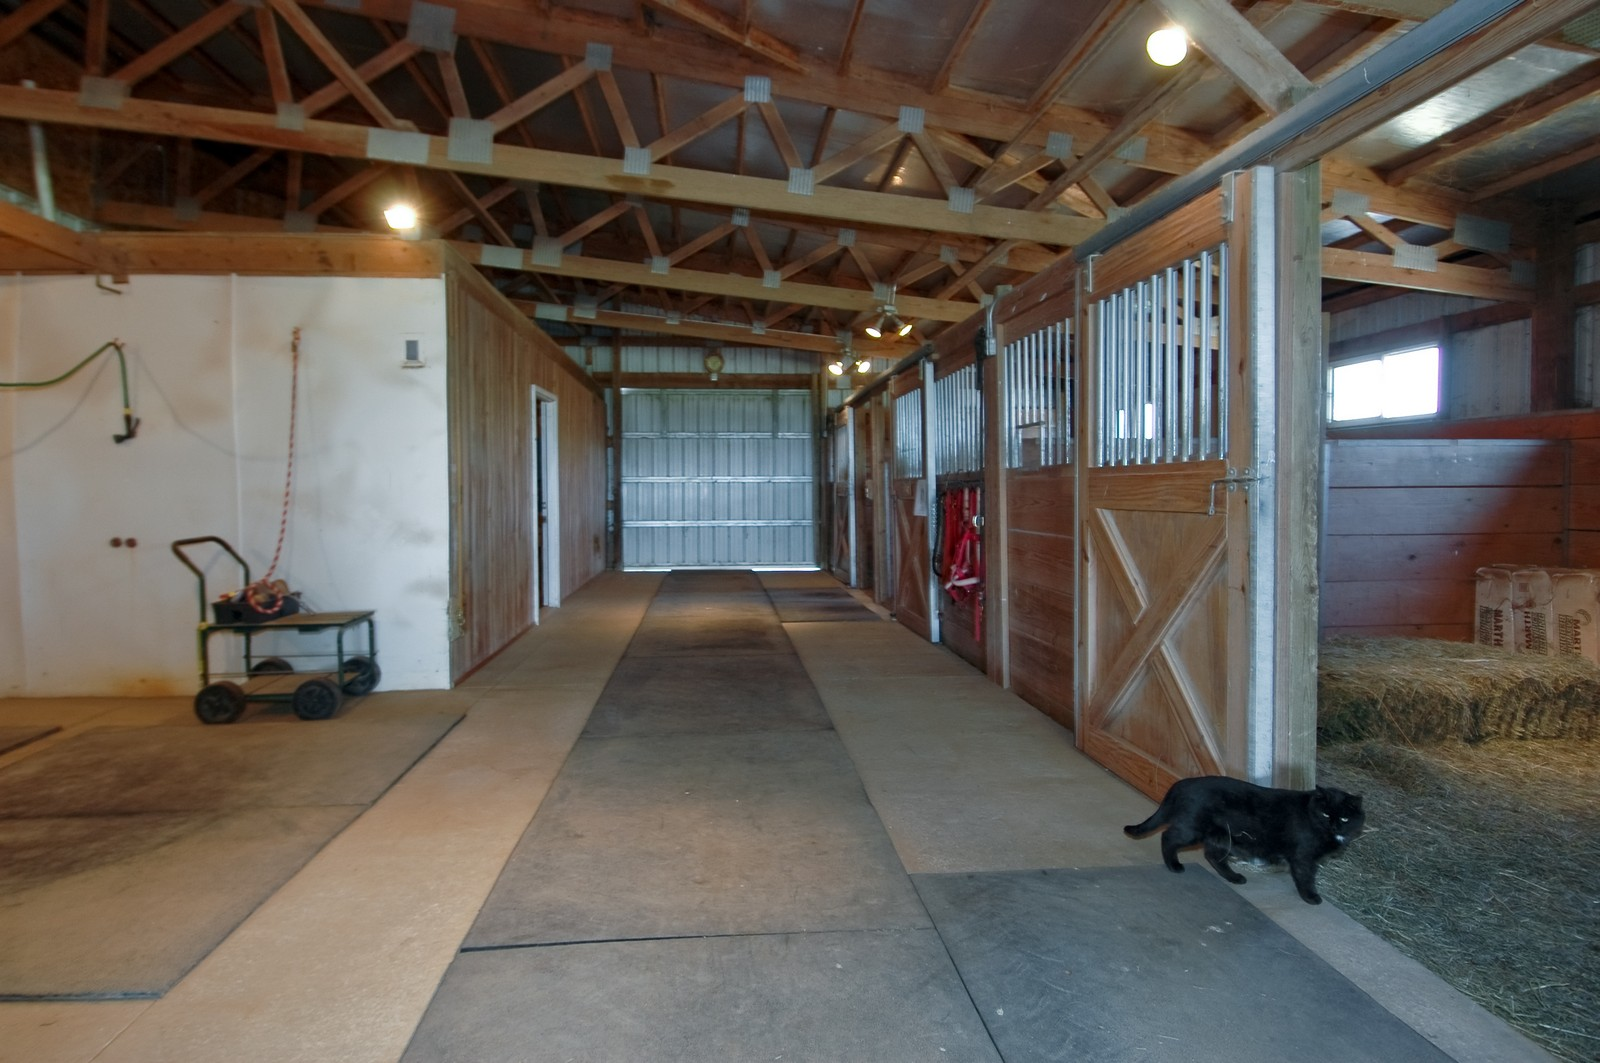 Real Estate Photography - 11785 Coon Trail, Harvard, IL, 60033 - Horse Stall / Stables